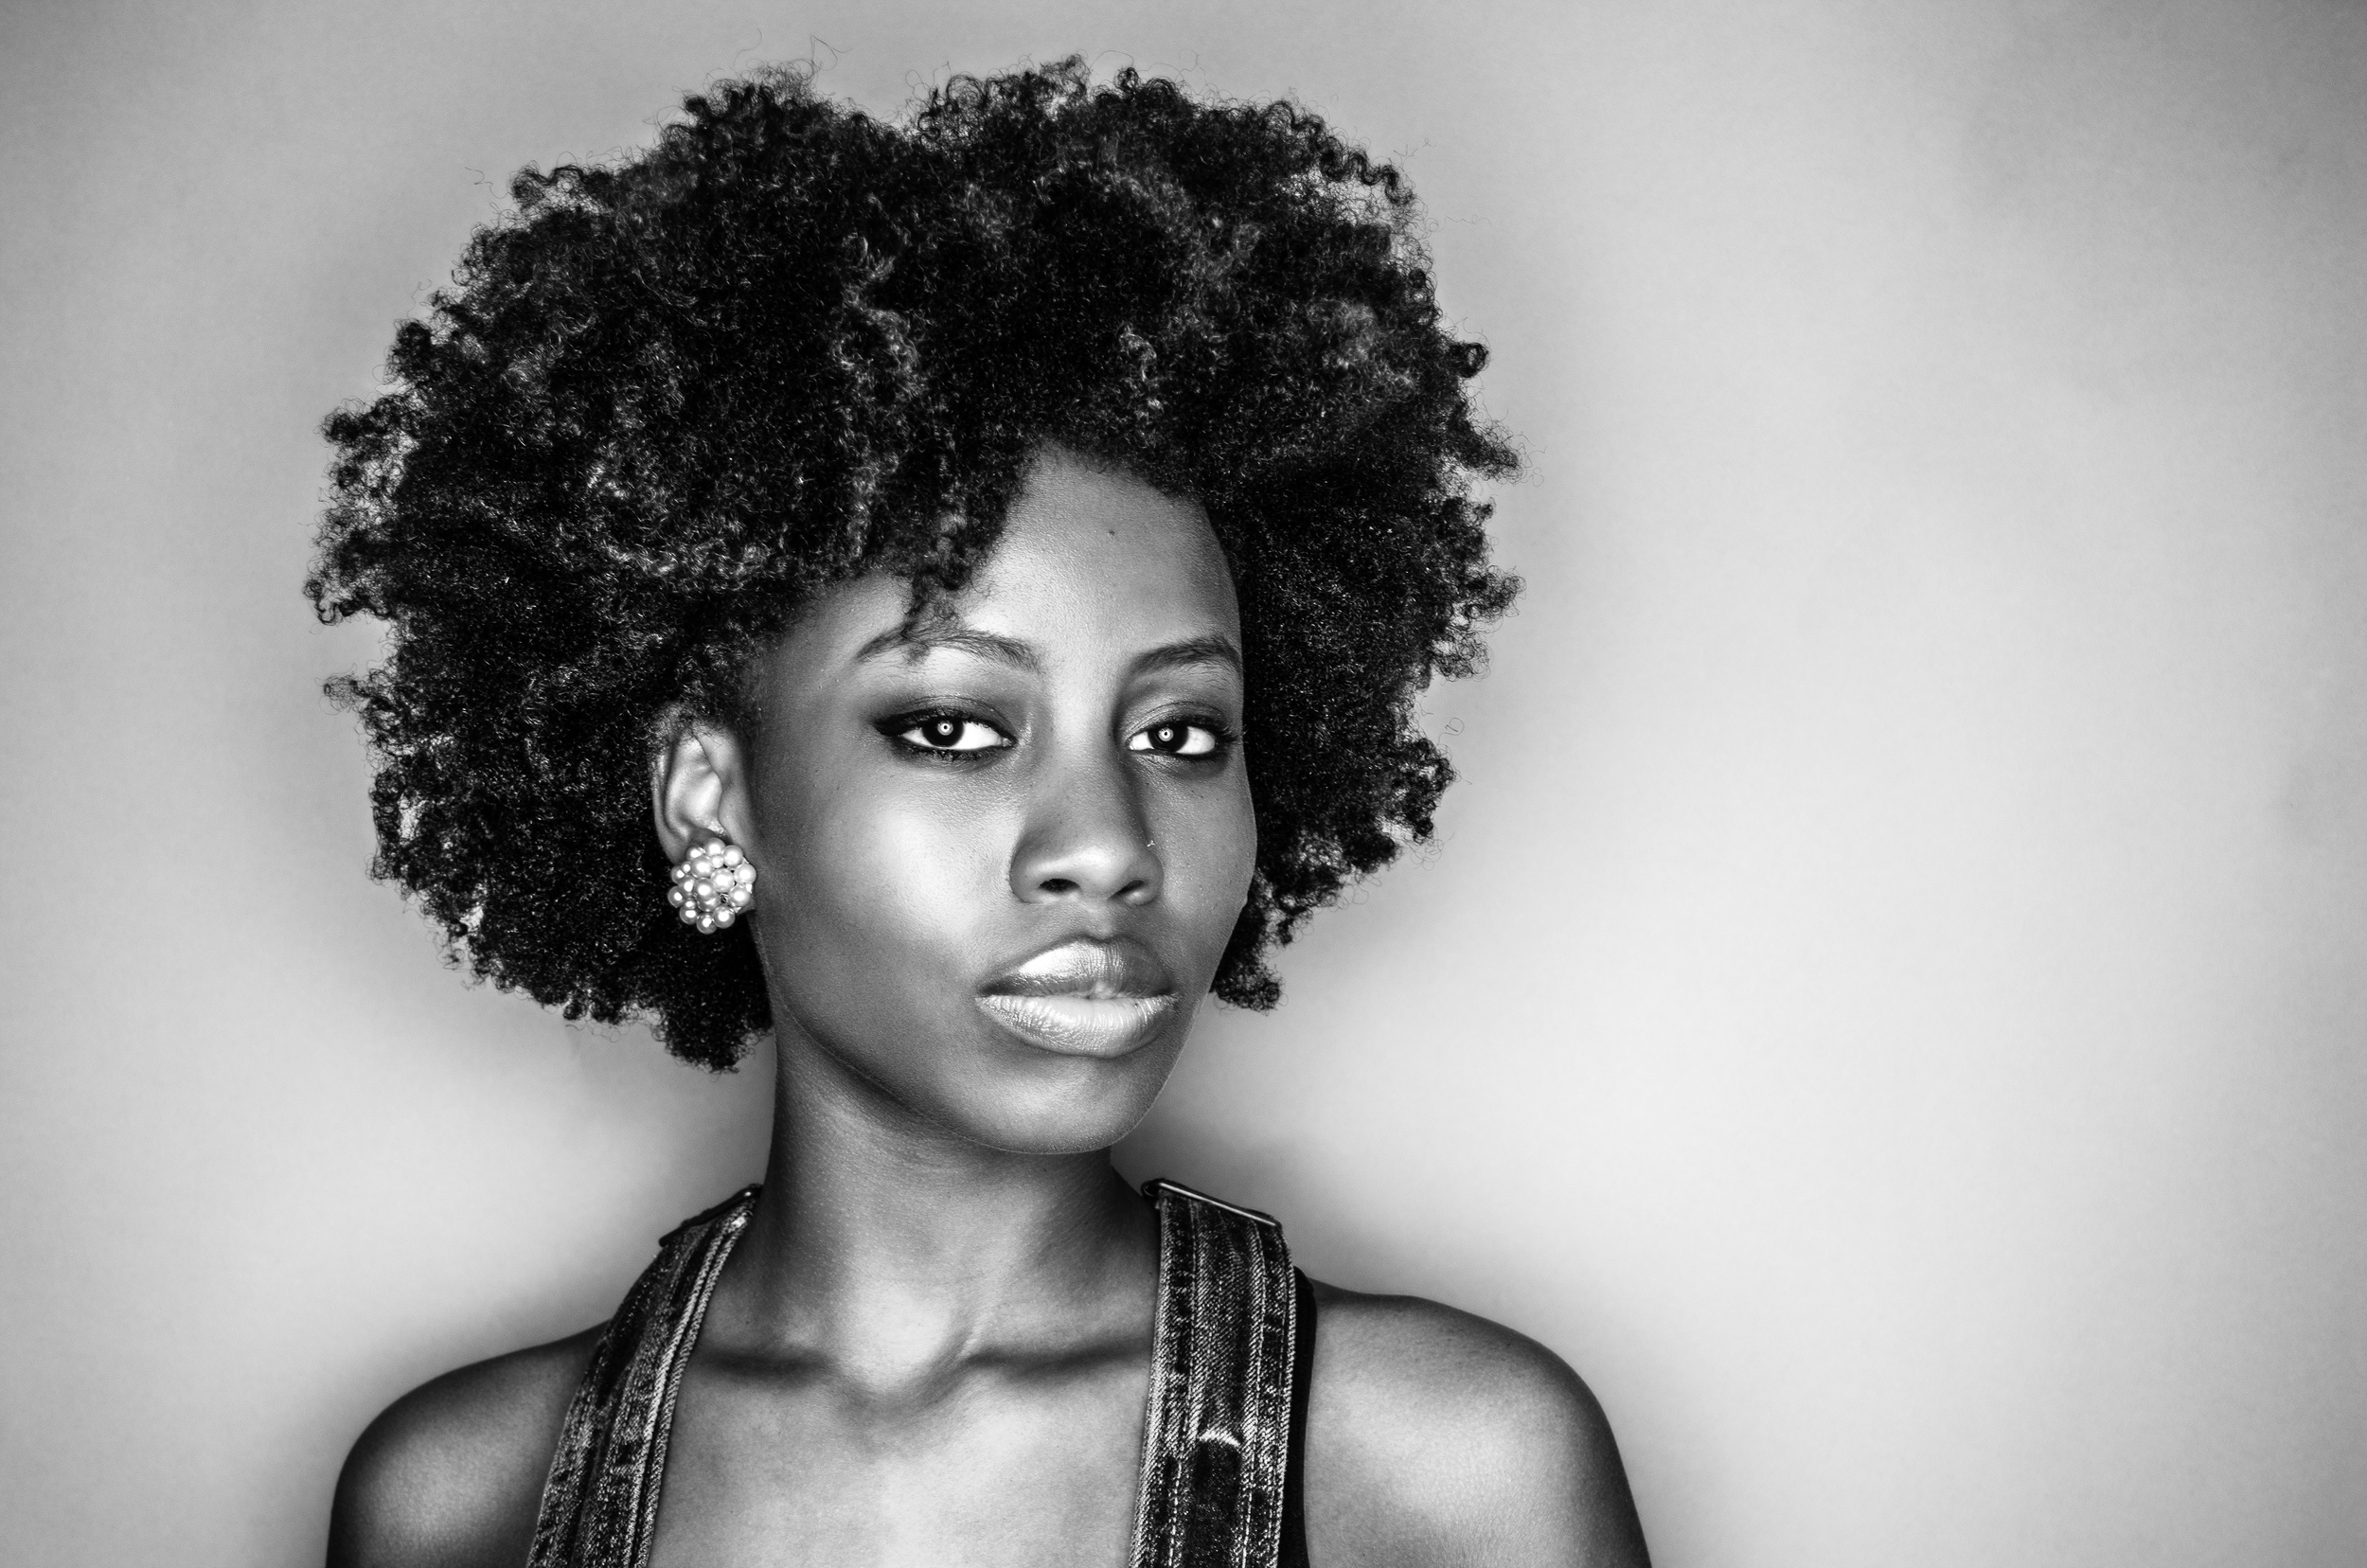 LaQuinda for the Big Natural Hair Project by LDP Studios